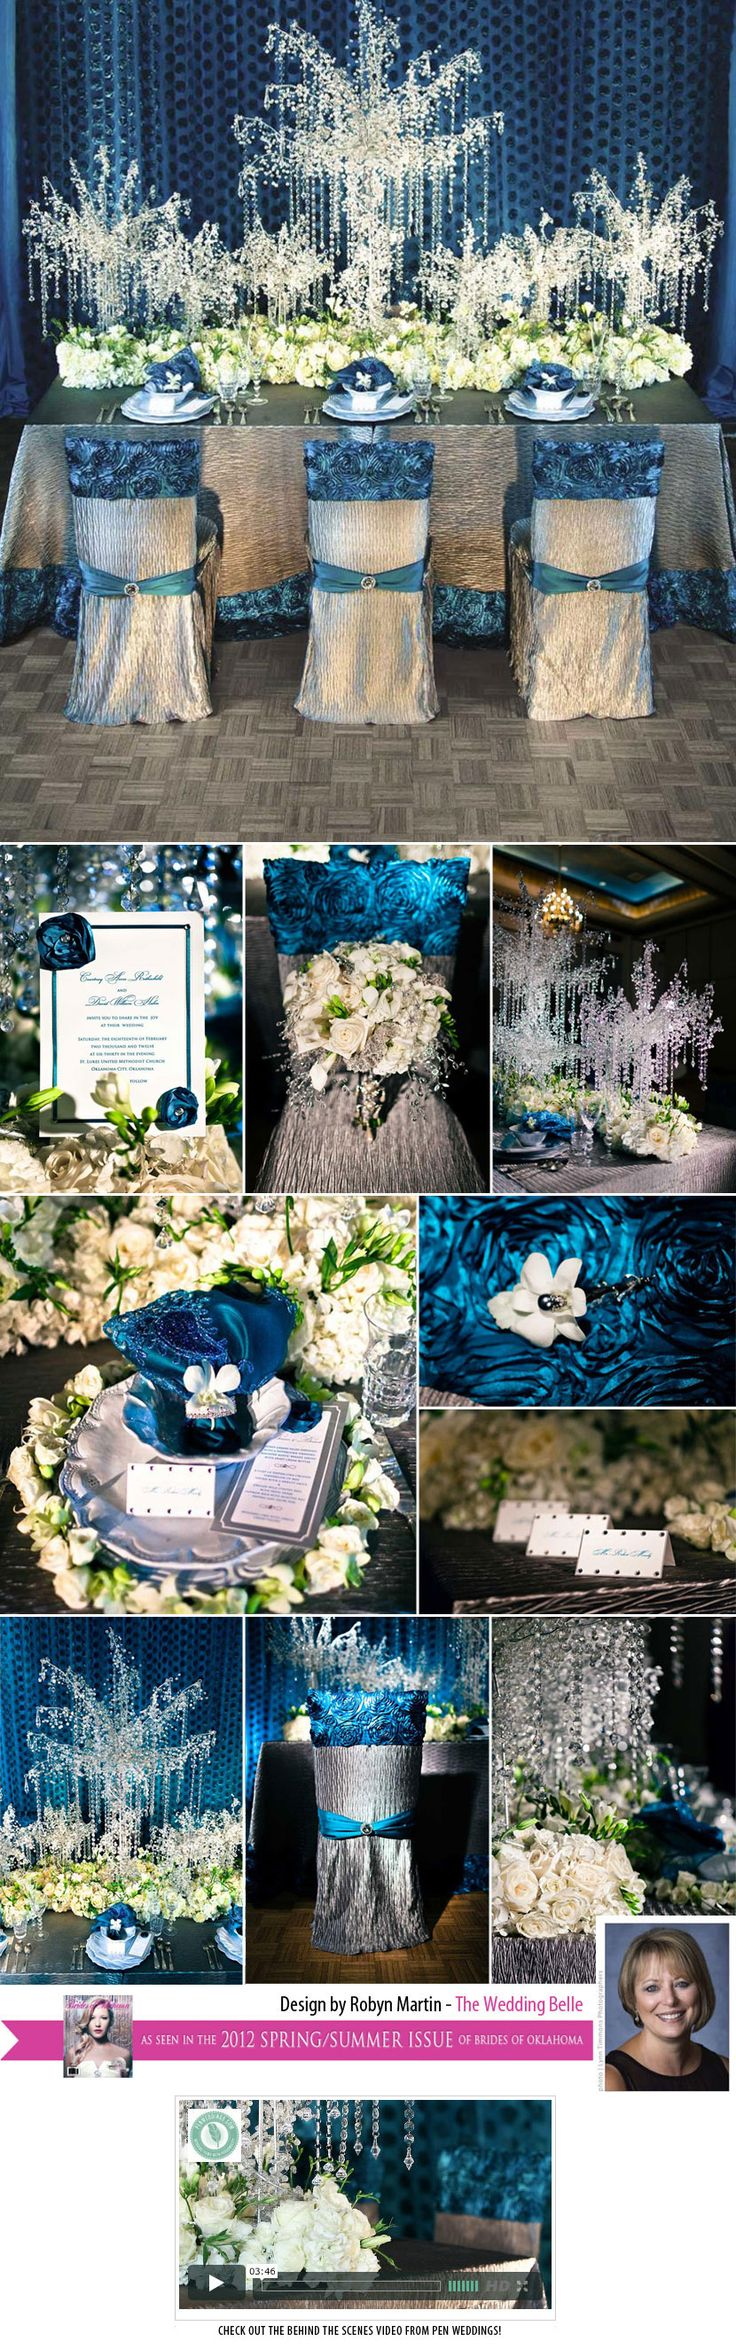 Incredible crystal inspired wedding table design from The Wedding Belle!